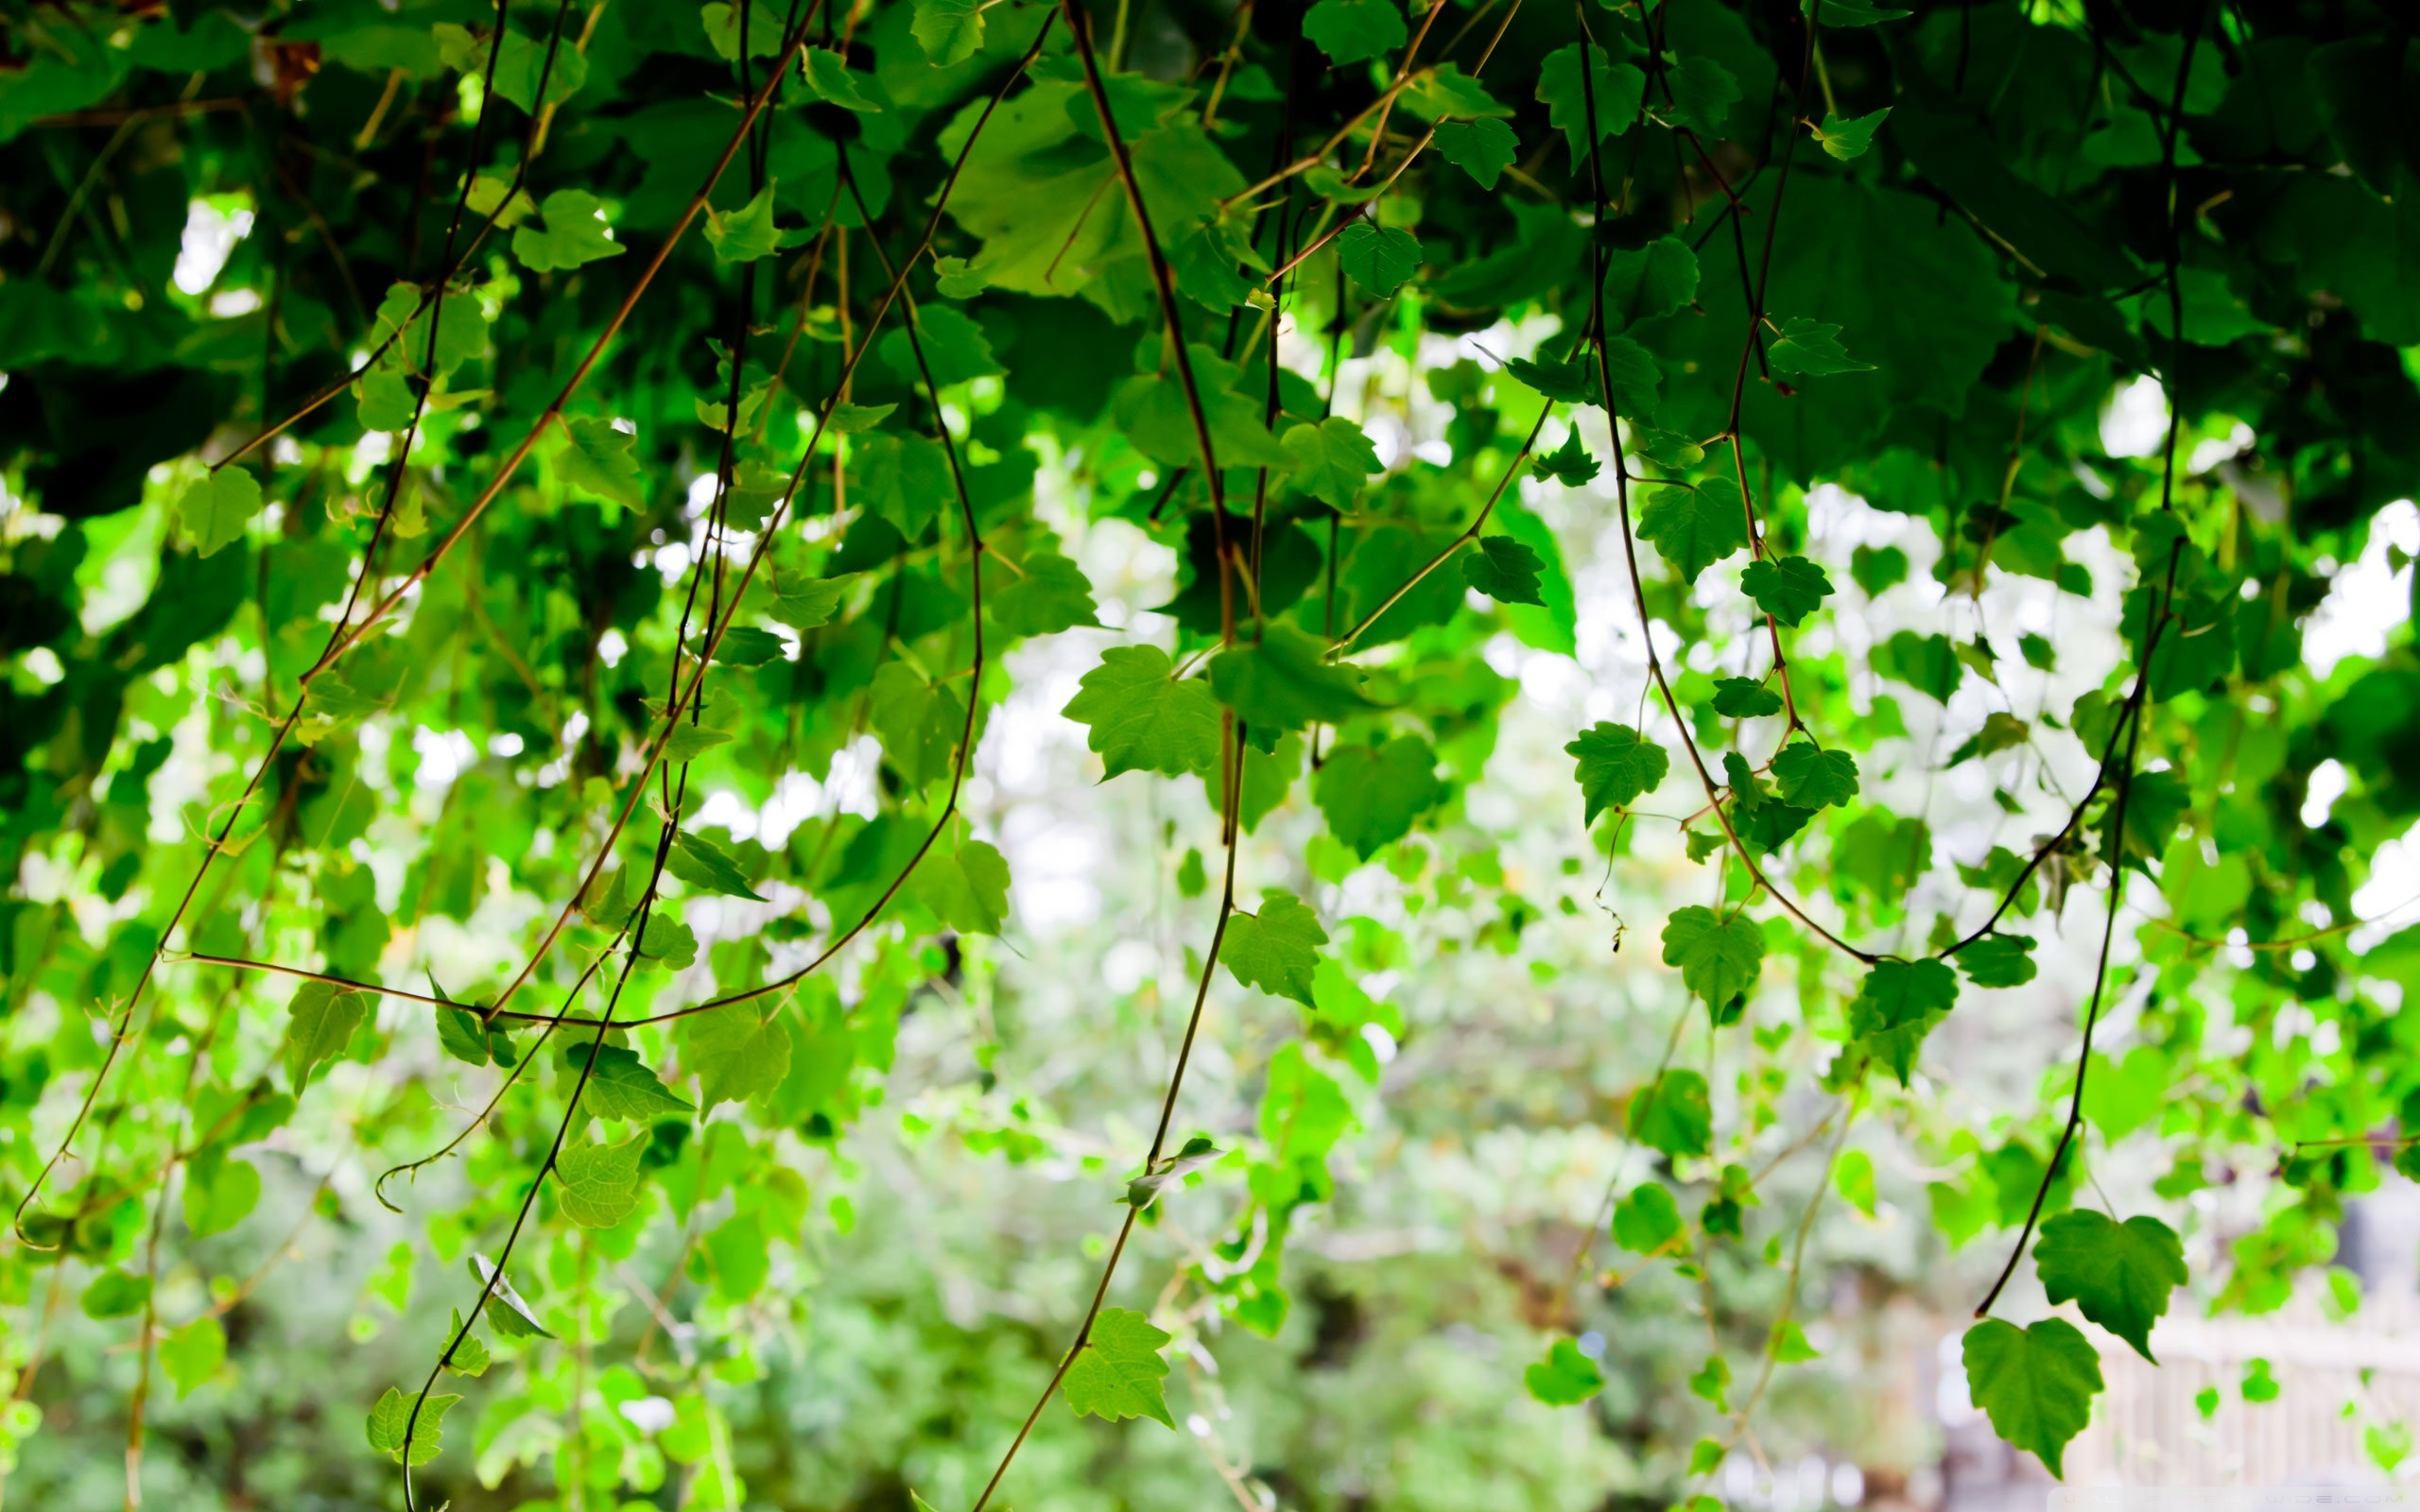 Vines Wallpapers and Background Images   stmednet 2560x1600